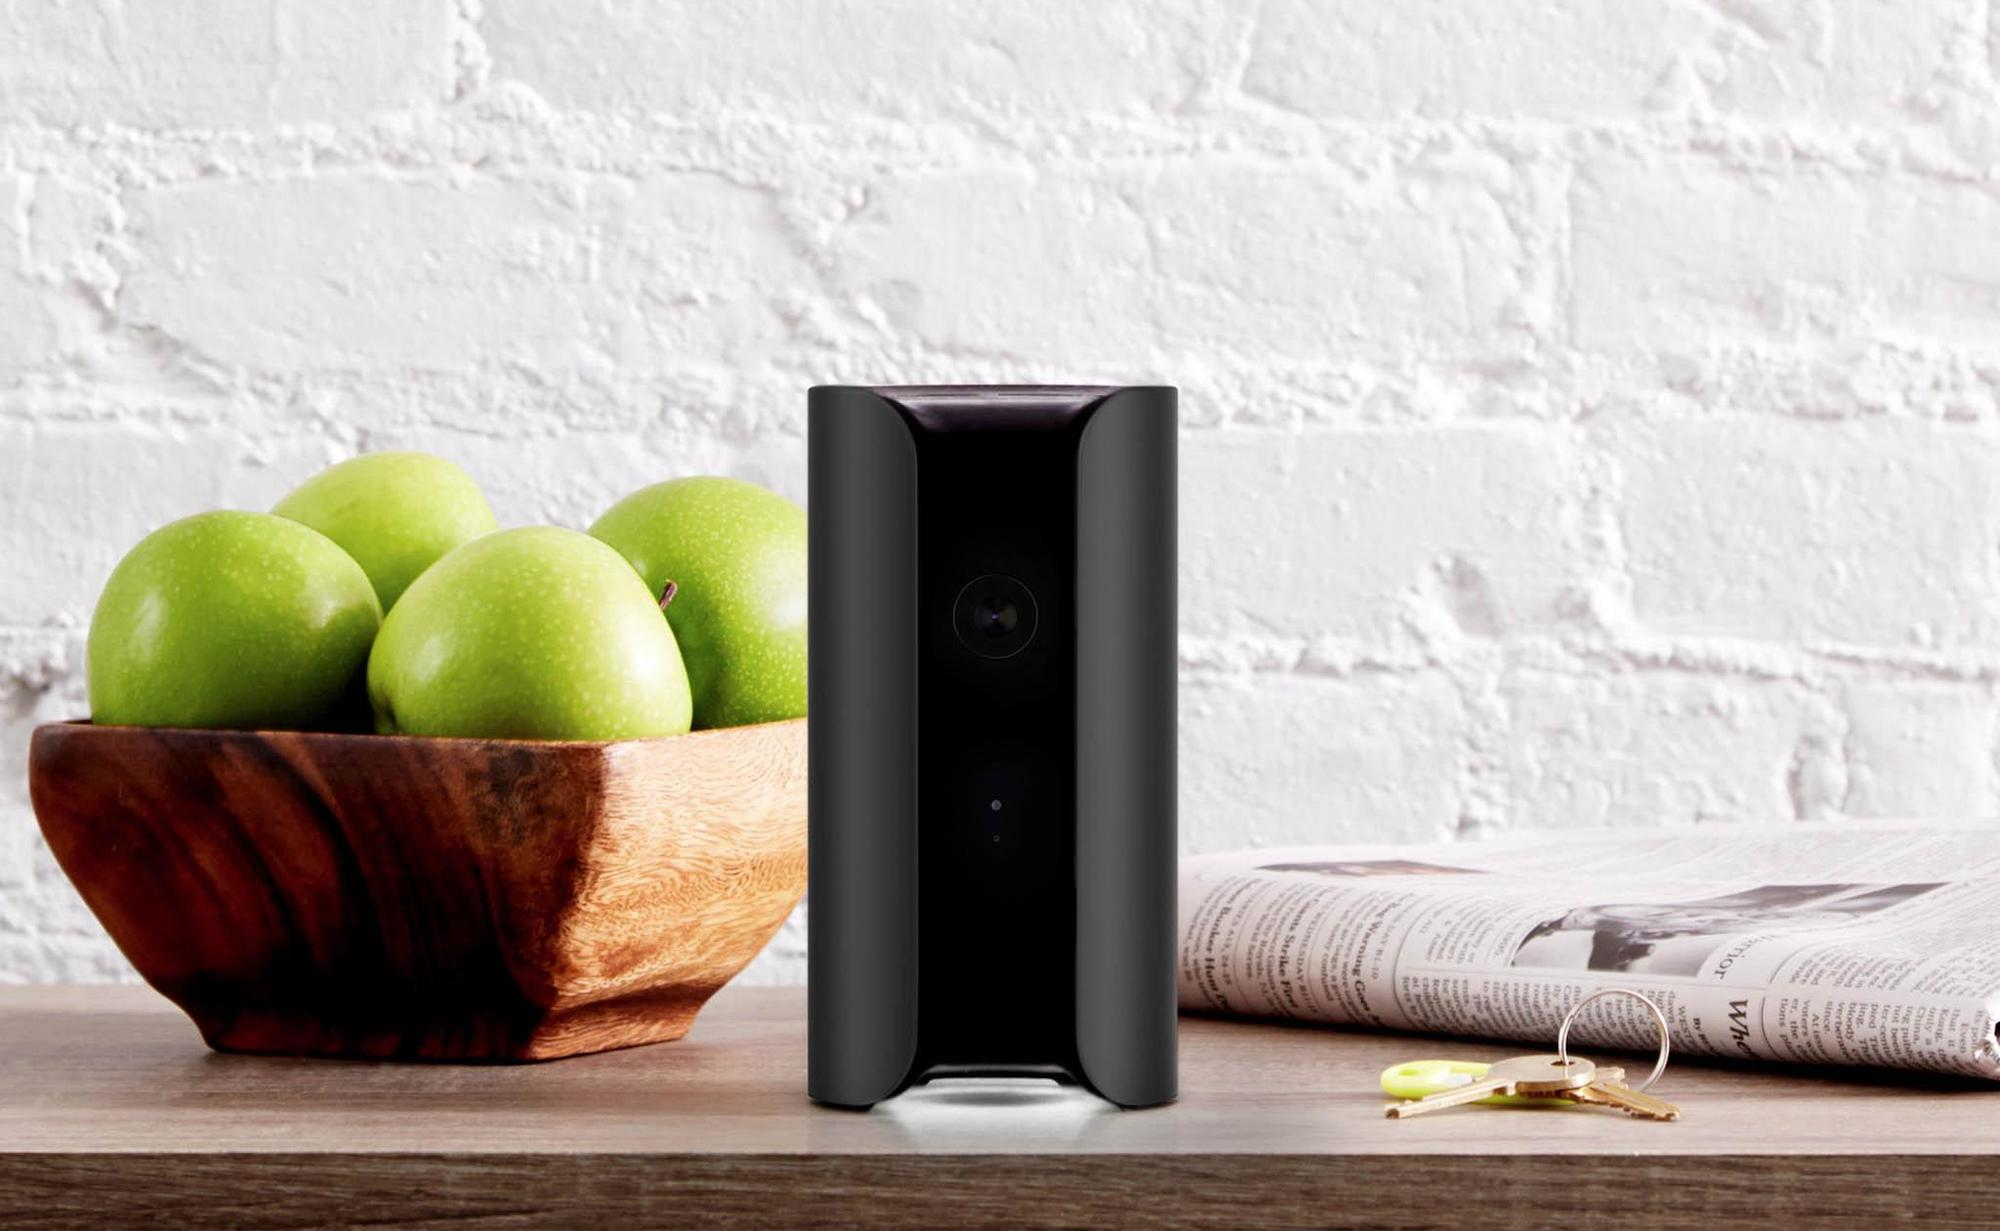 The all-in-one home security camera is on a counter with a bowl of green apples behind it.